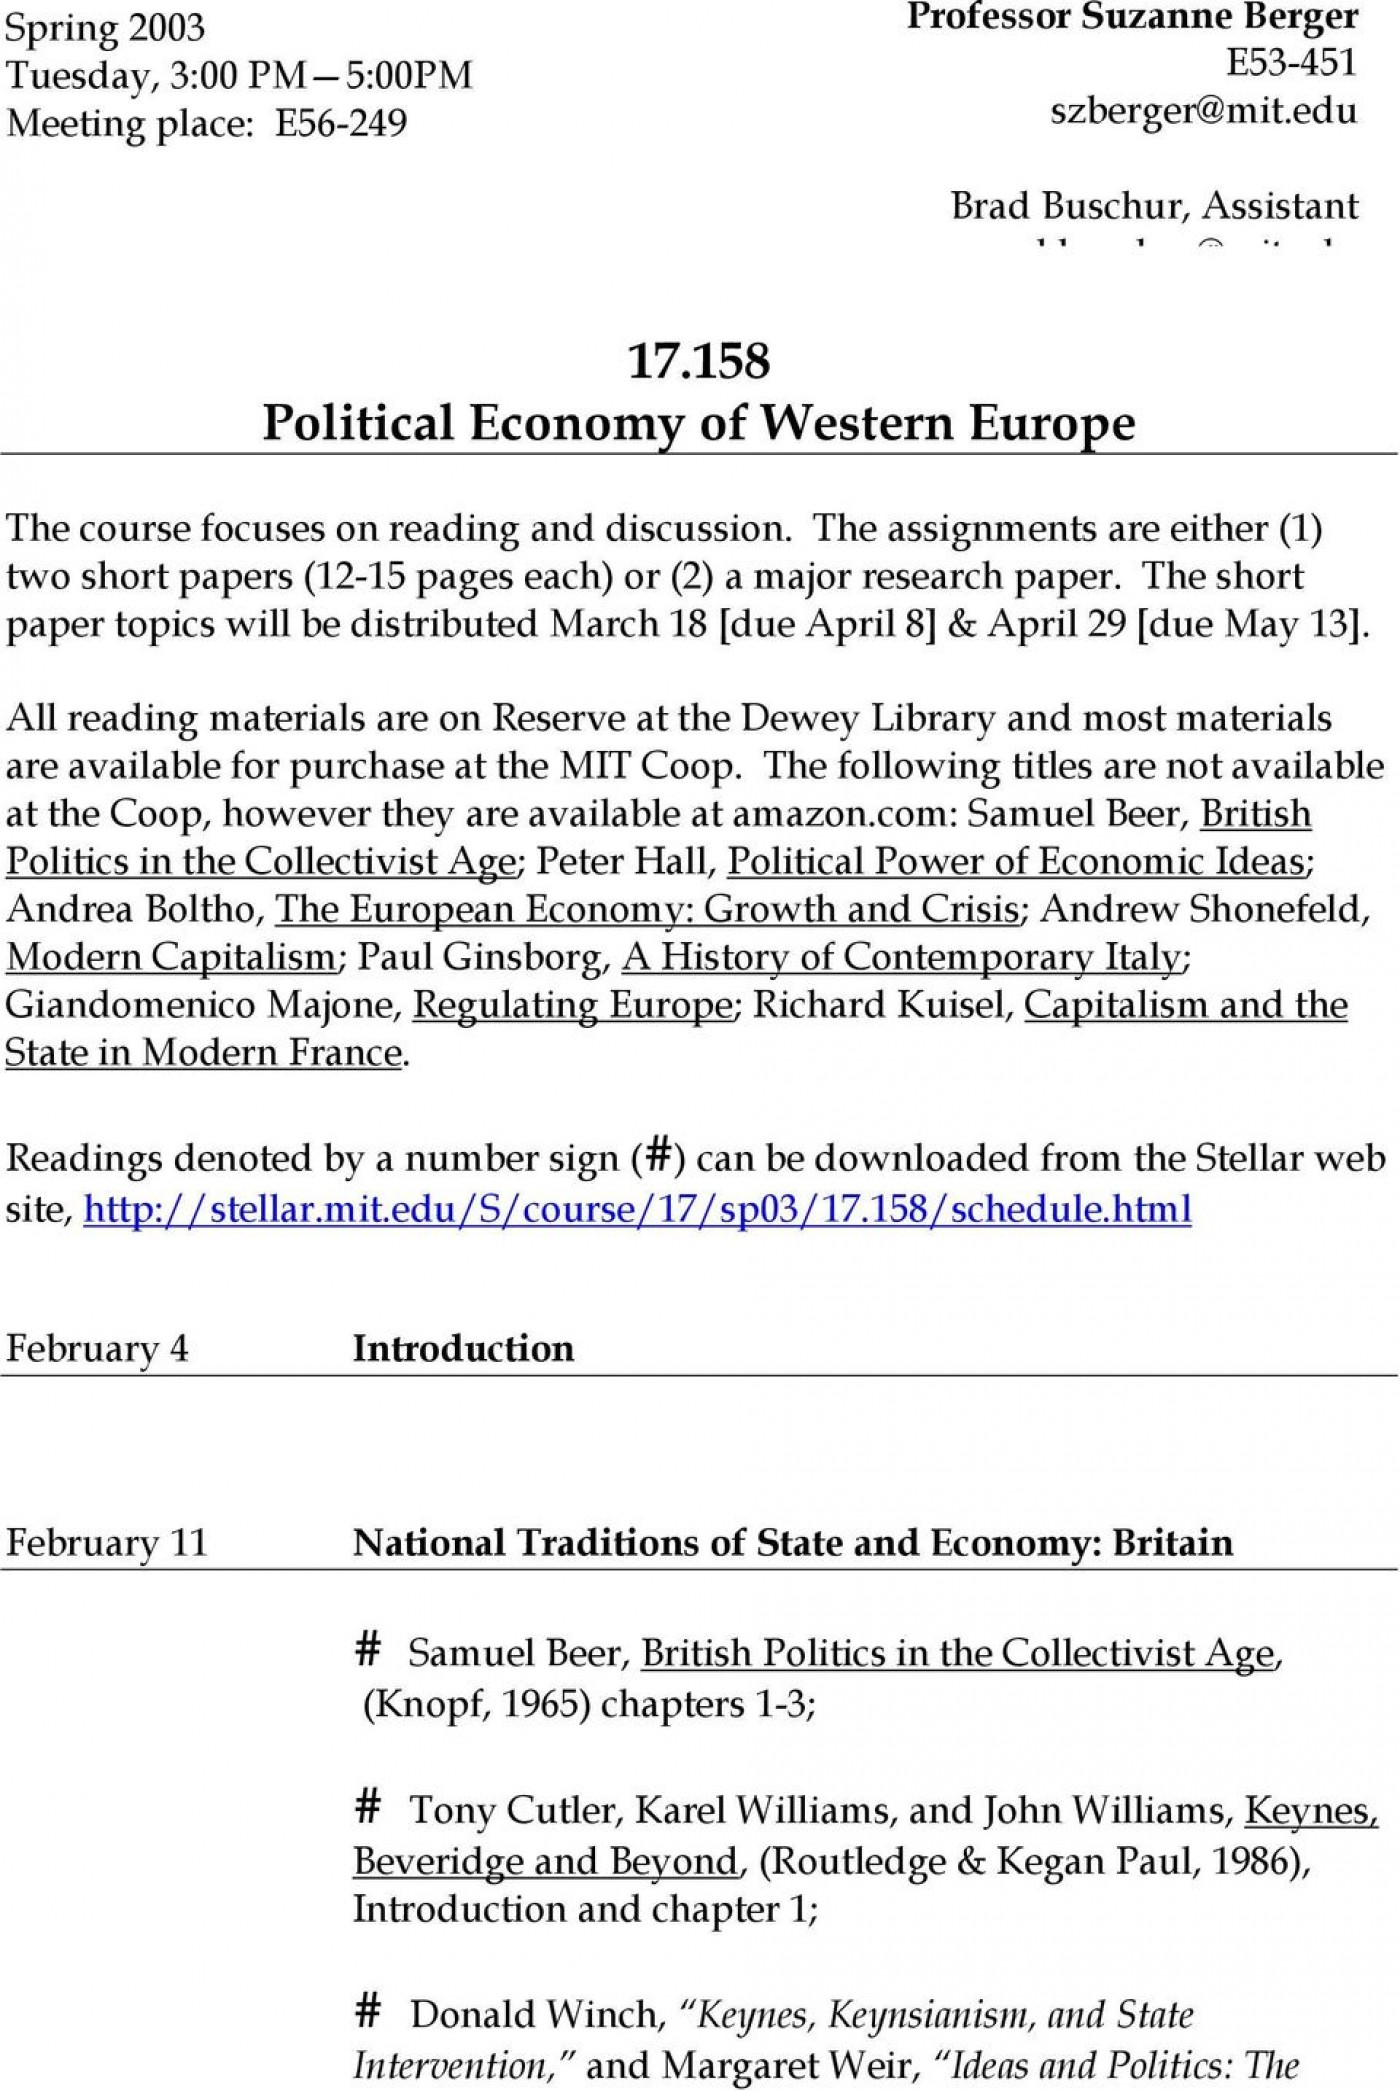 021 Research Paper Political Economy Topics Page 1 Awesome Global International 1400